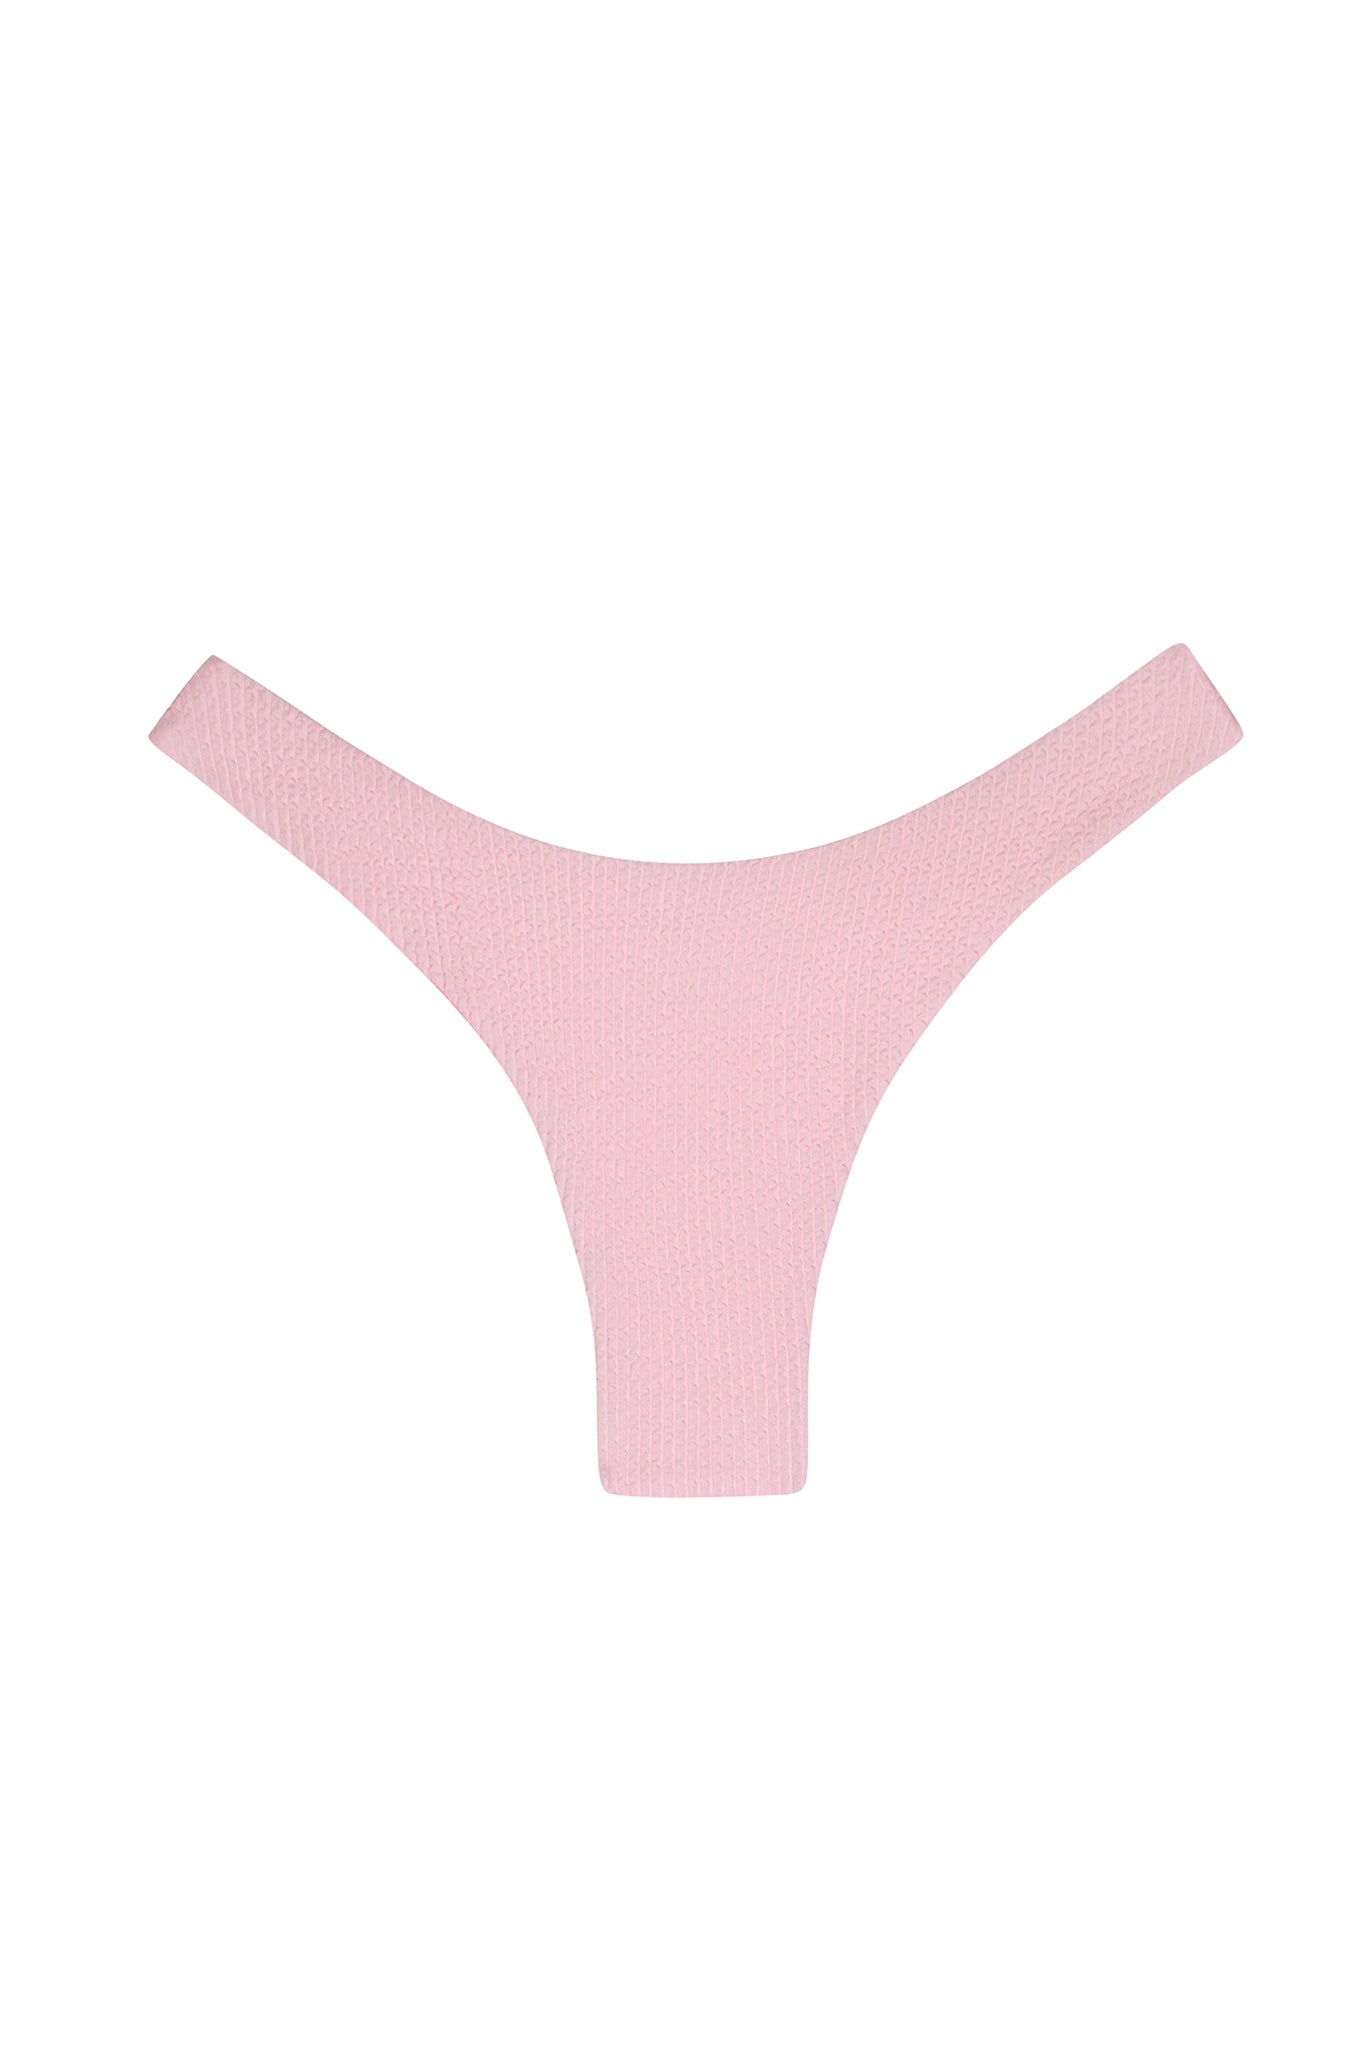 Load image into Gallery viewer, Byron Bottom - Baby Pink Crinkle